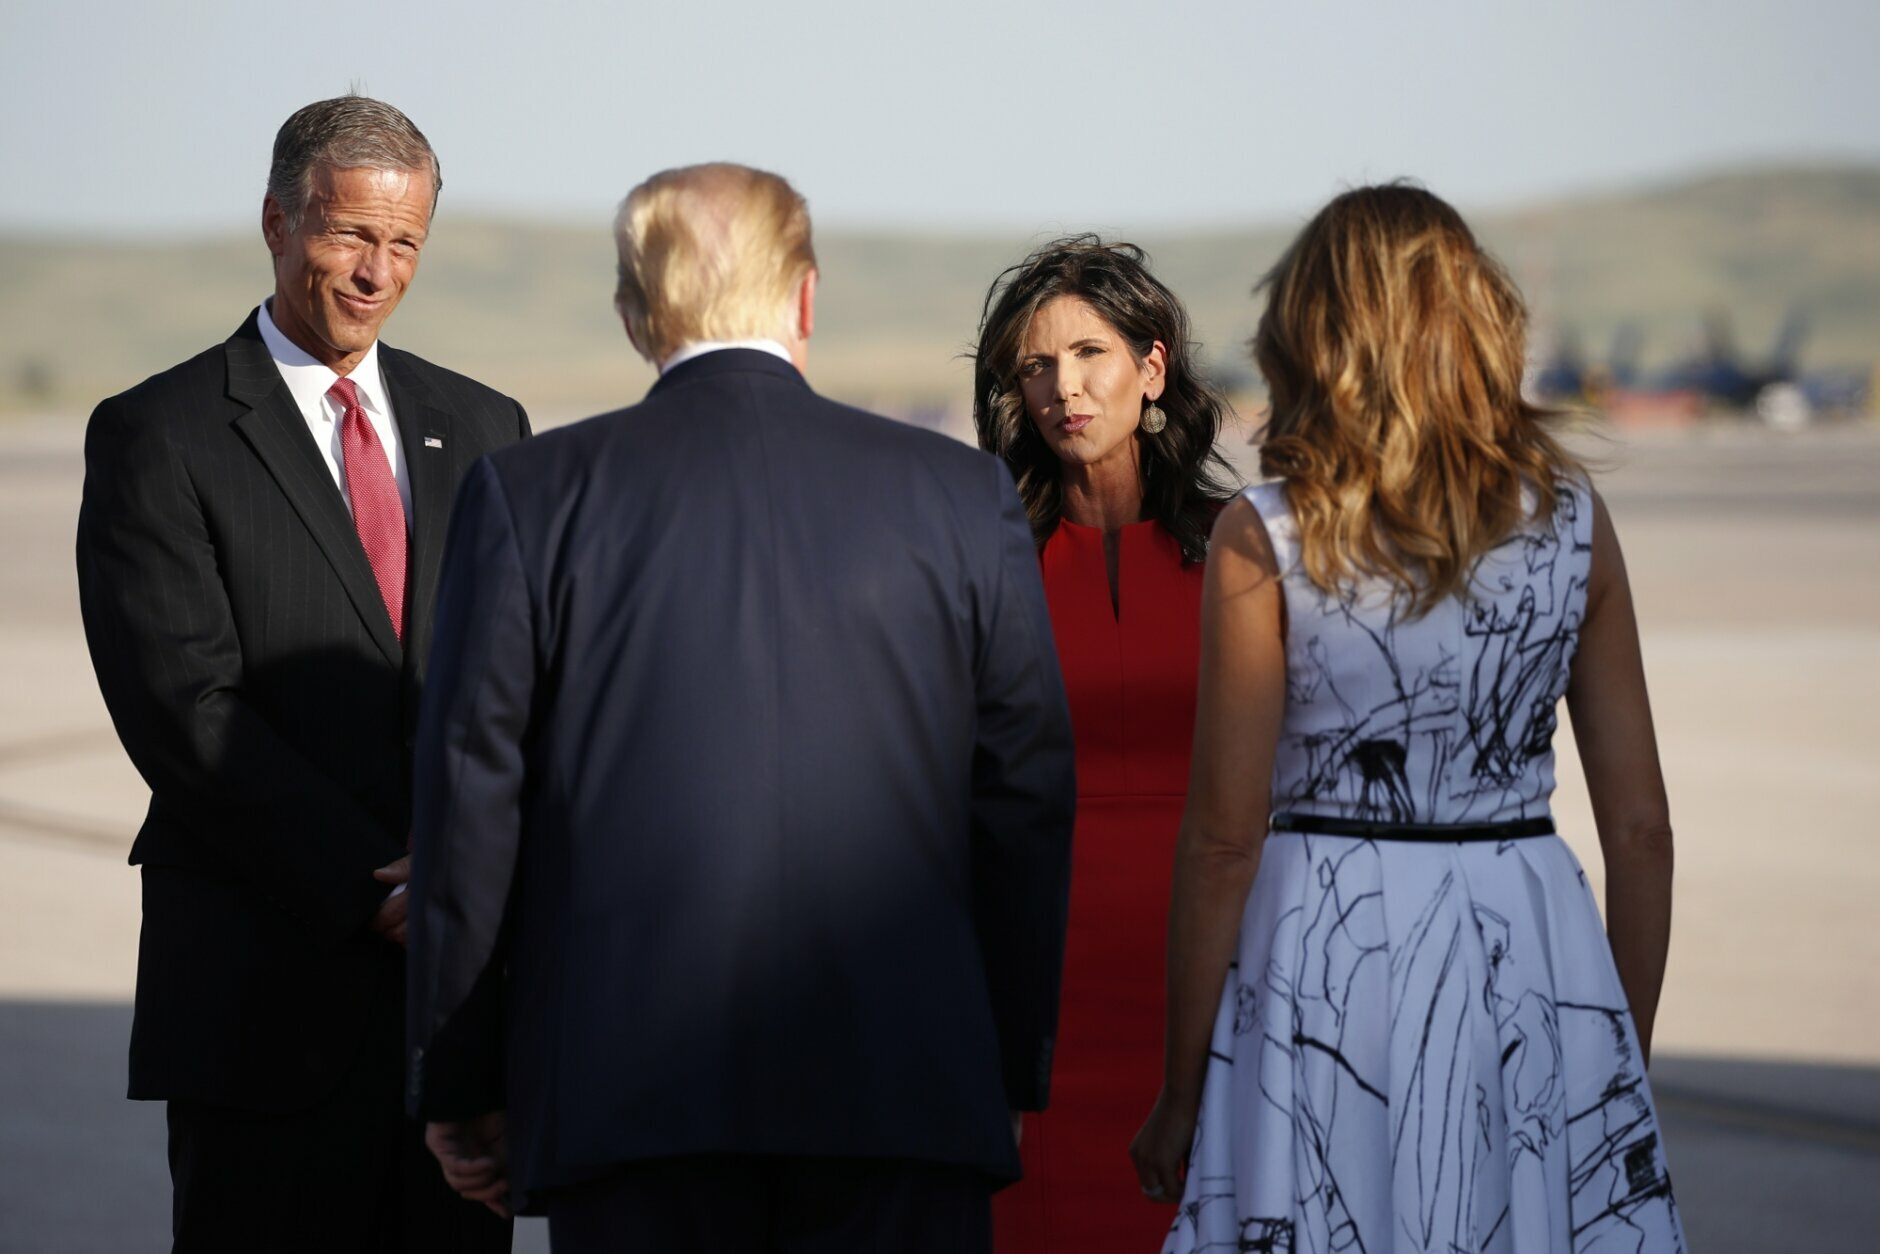 Sen. John Thune, R-S.D., and Gov. Kristi Noem greet President Donald Trump and first Lady Melania Trump upon arrival at Ellsworth Air Force Base, Friday, July 3, 2020, in Rapid City, S.D. Trump is en route to Mount Rushmore National Memorial. (AP Photo/Alex Brandon)